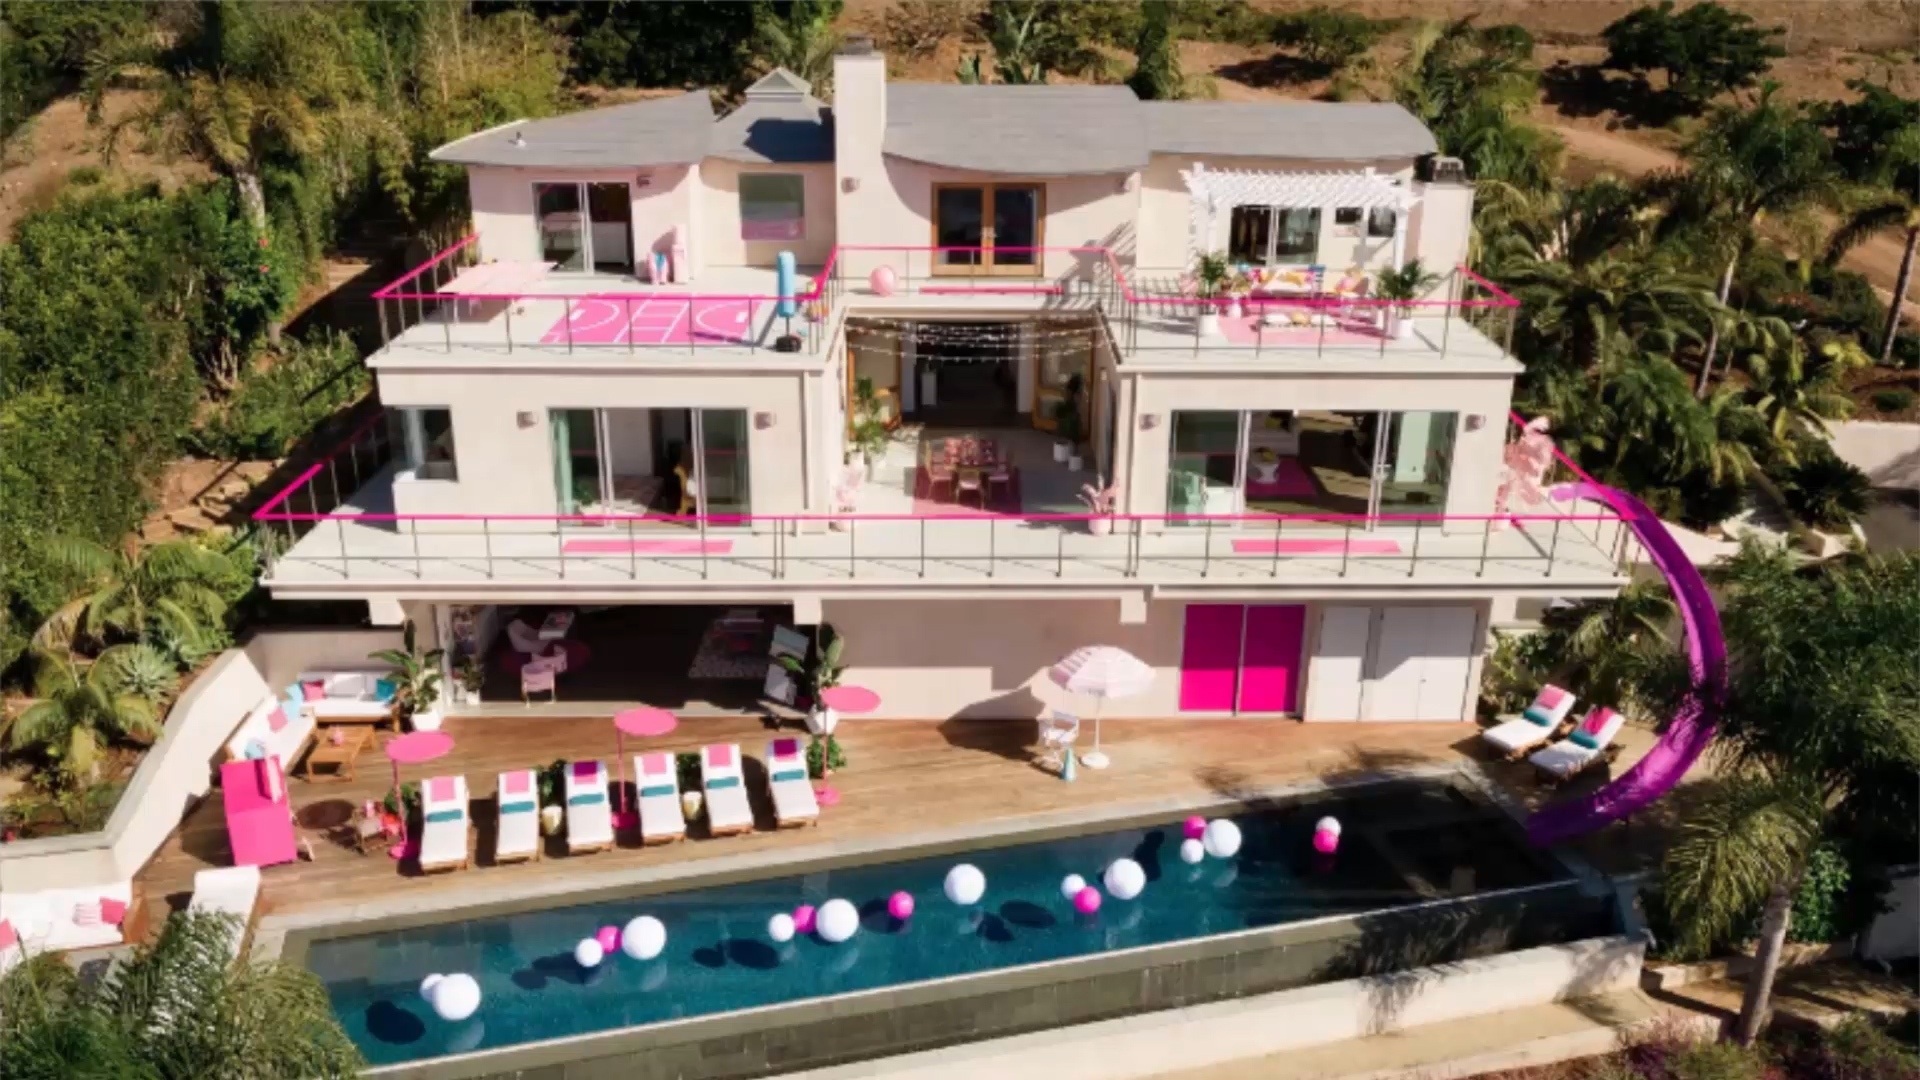 Rent Barbie's life-size Malibu Dreamhouse for only $60 a night